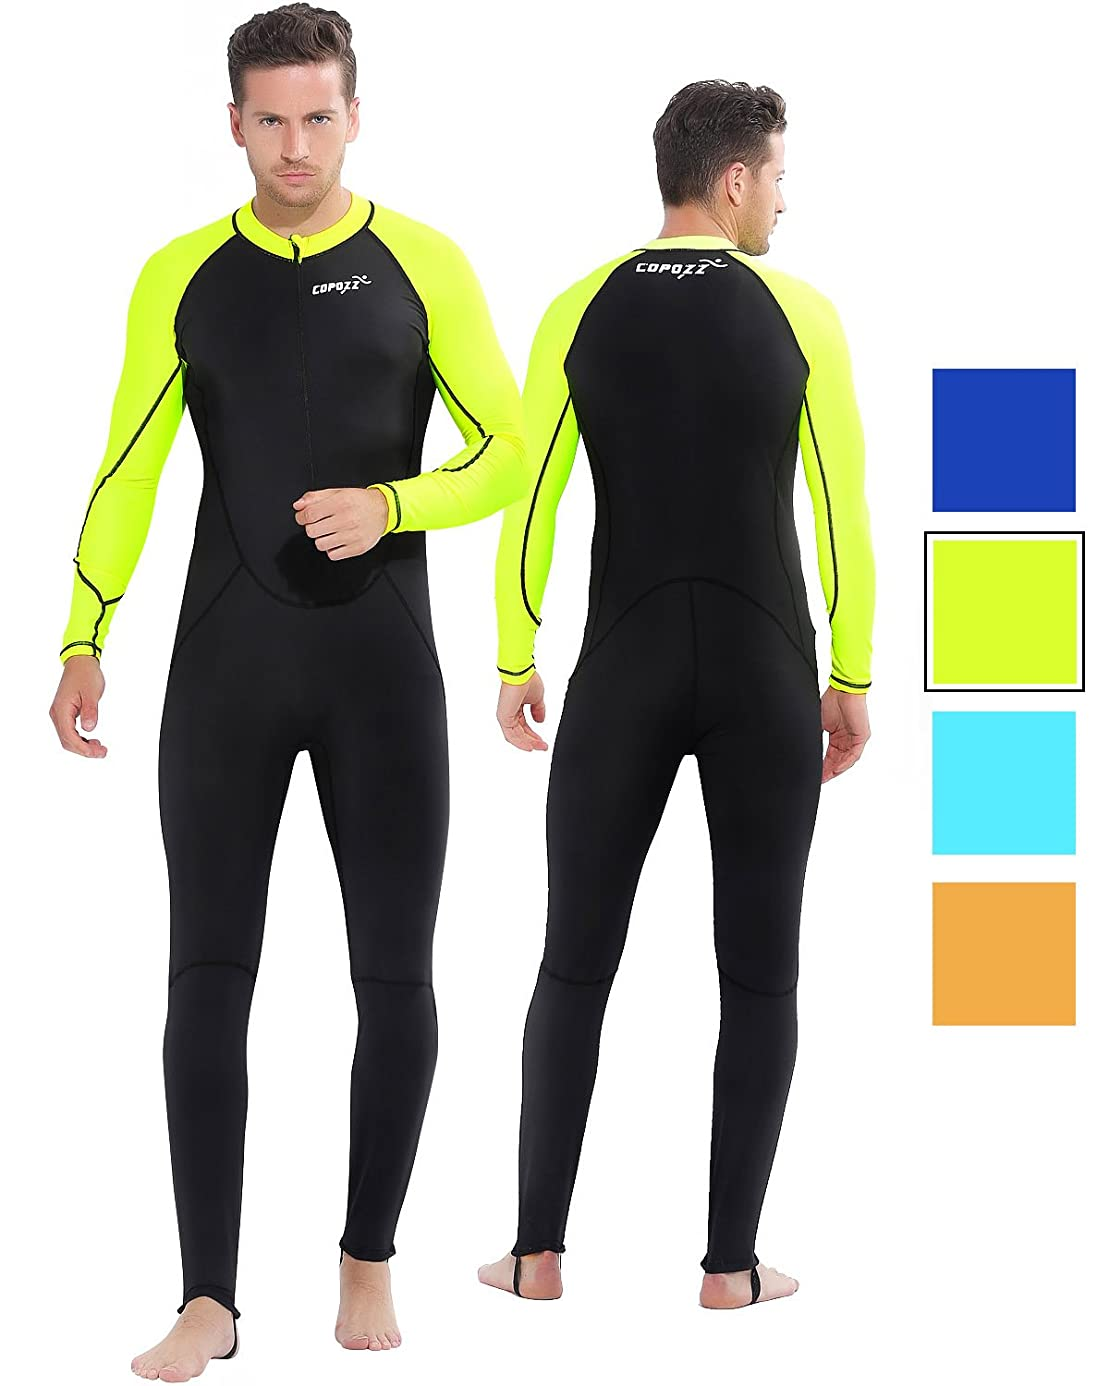 COPOZZ Rash Guard, Full Body Thin Wetsuit, Lycra UV Protection Long Sleeves Dive Skin Suit - for Swimming/Scuba Diving/Snorkeling/Surfing- One Piece for Men Women